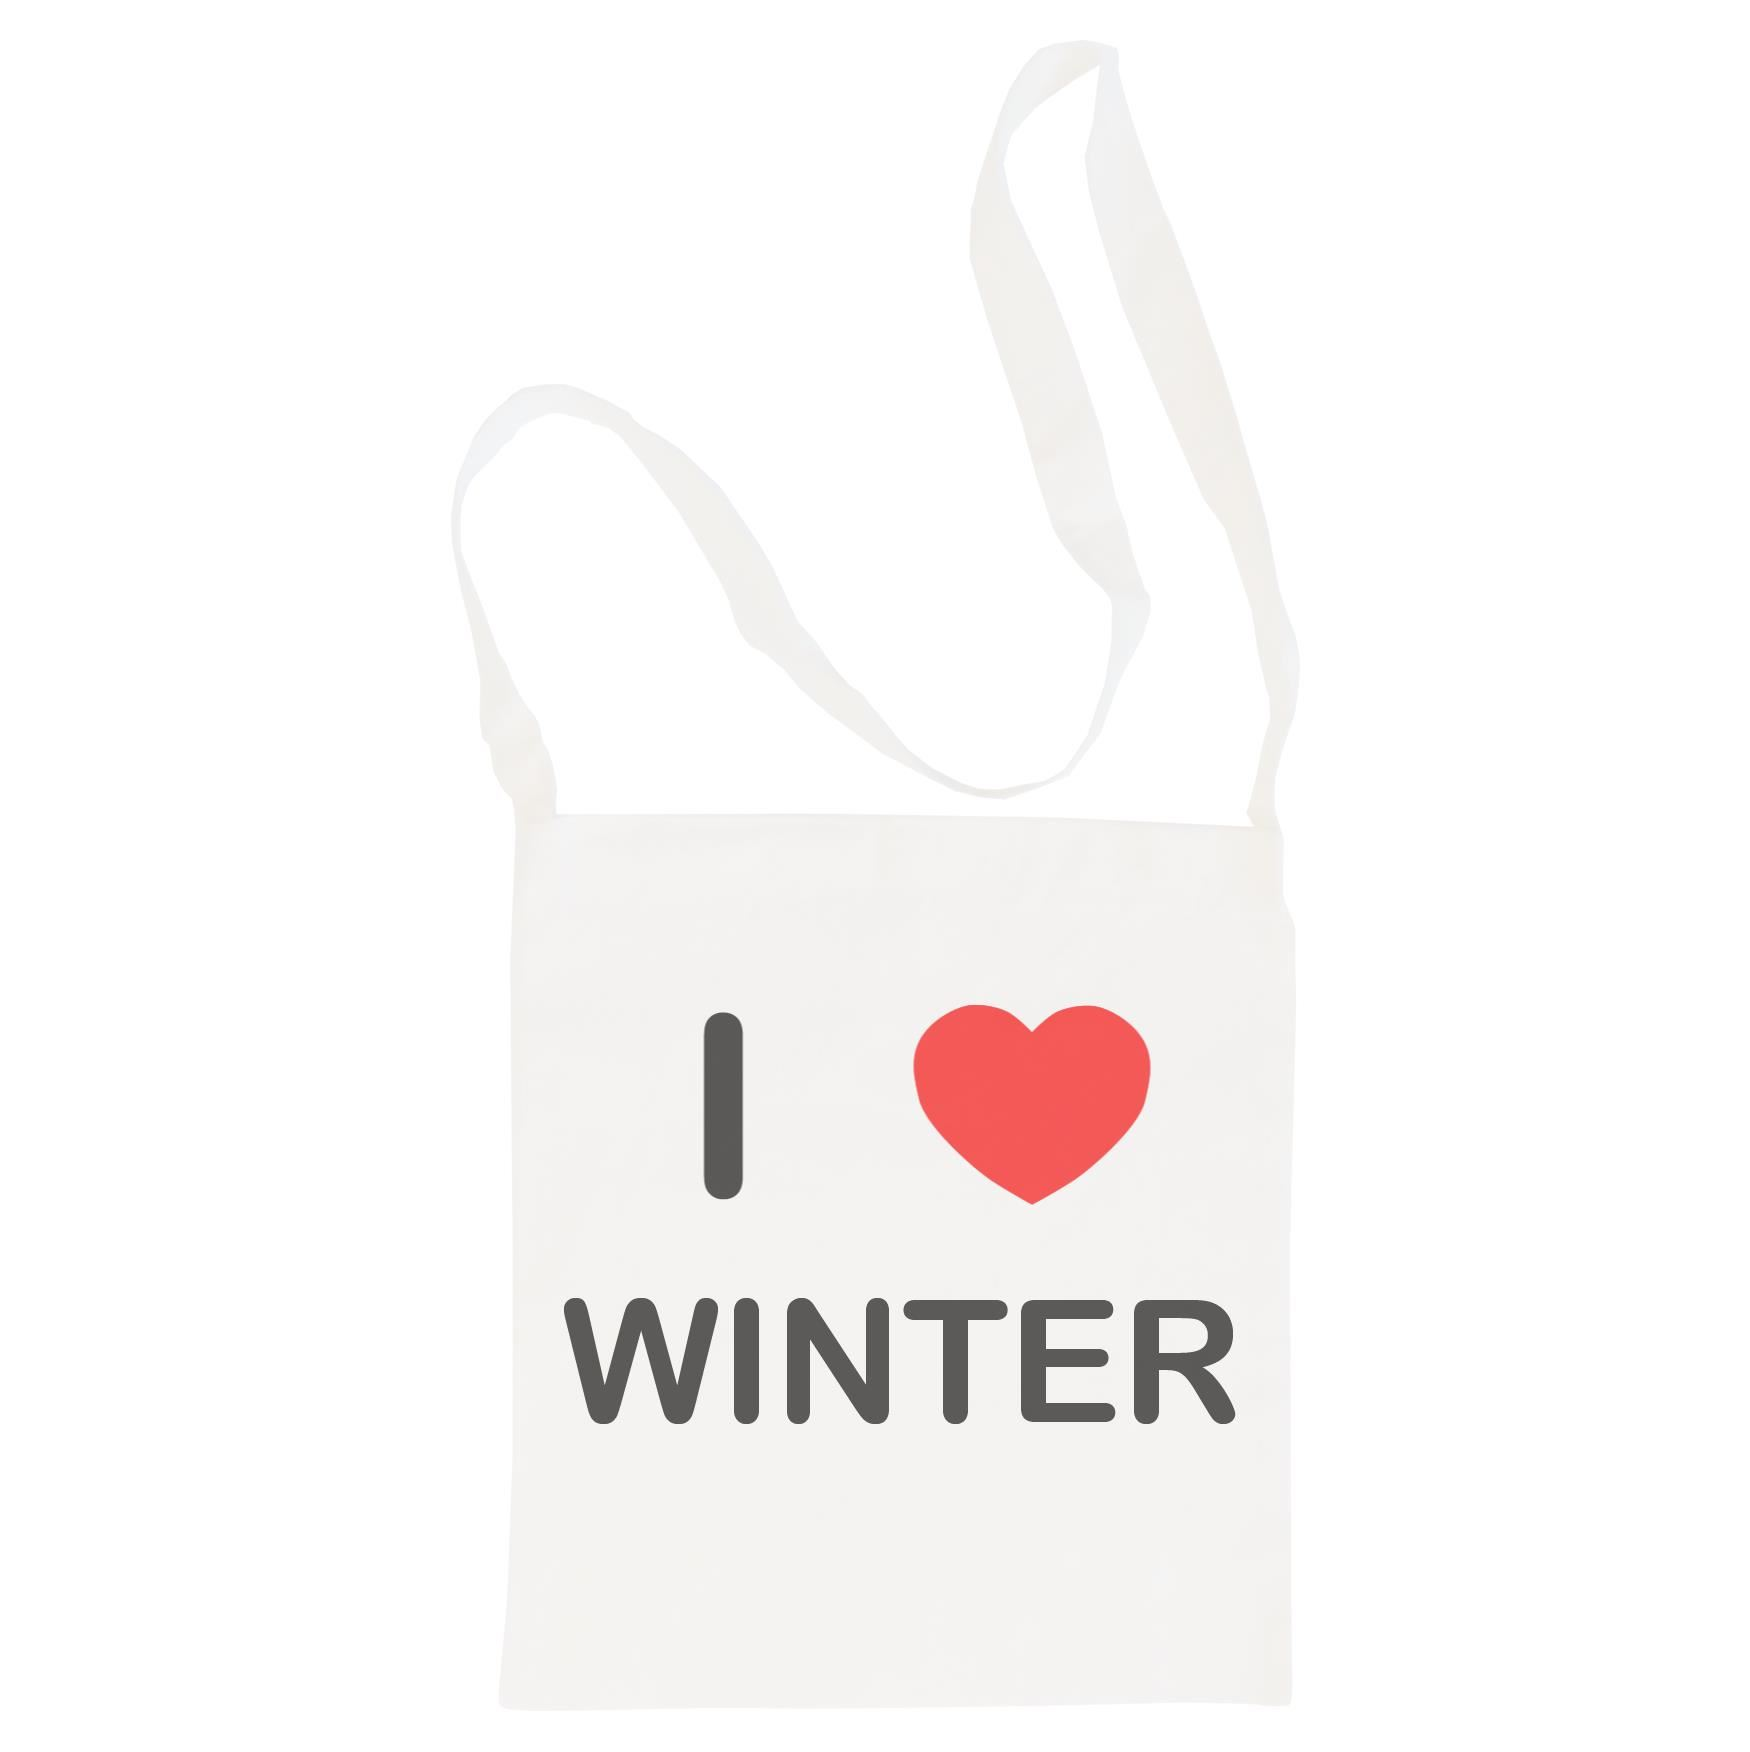 I Love Winter - Cotton Bag | Size choice Tote, Shopper or Sling